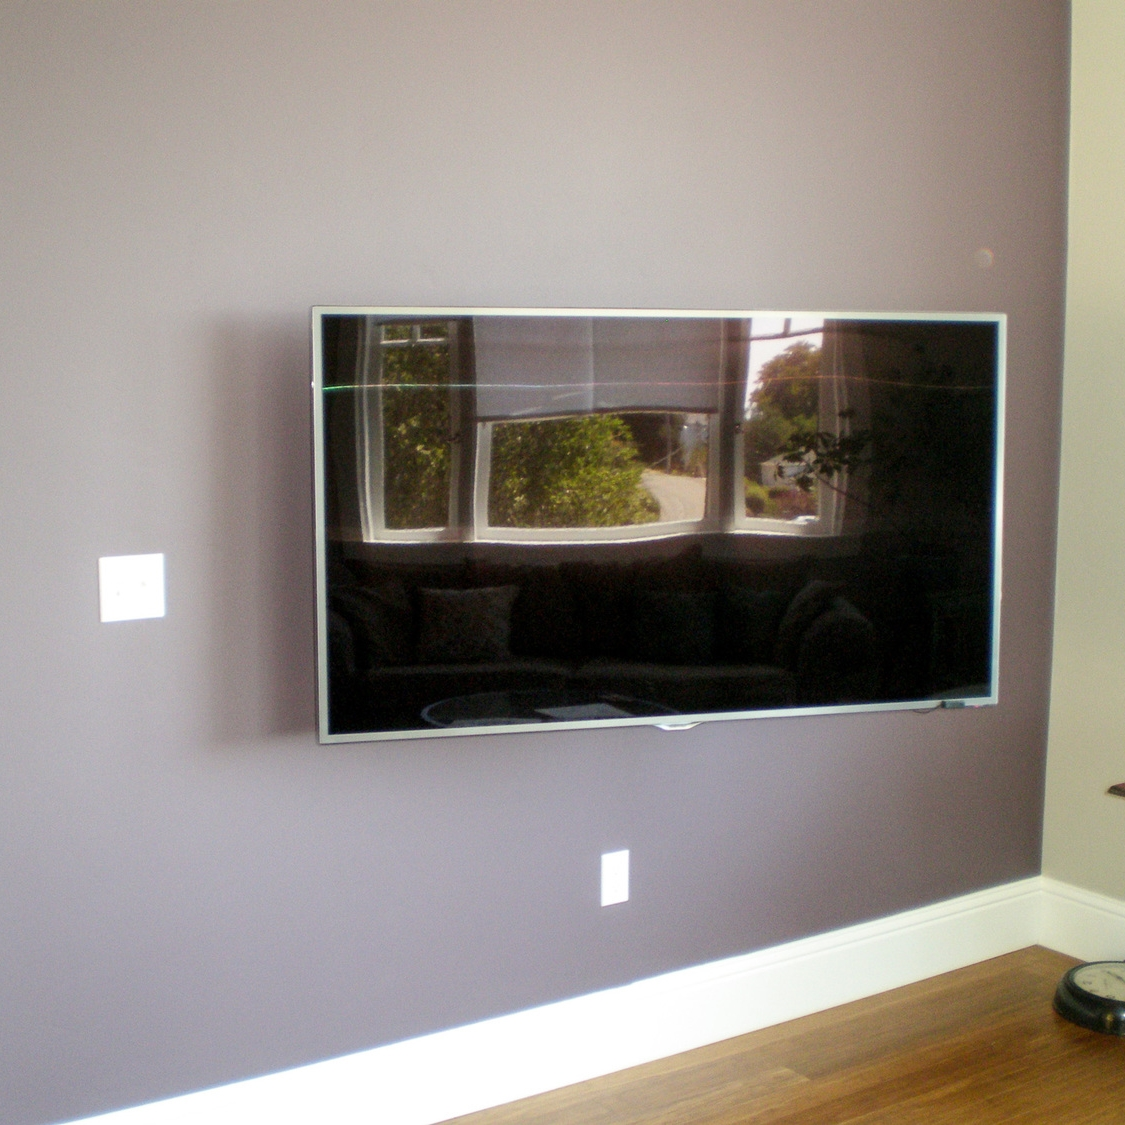 Haning-TV-with-no-wires.jpg